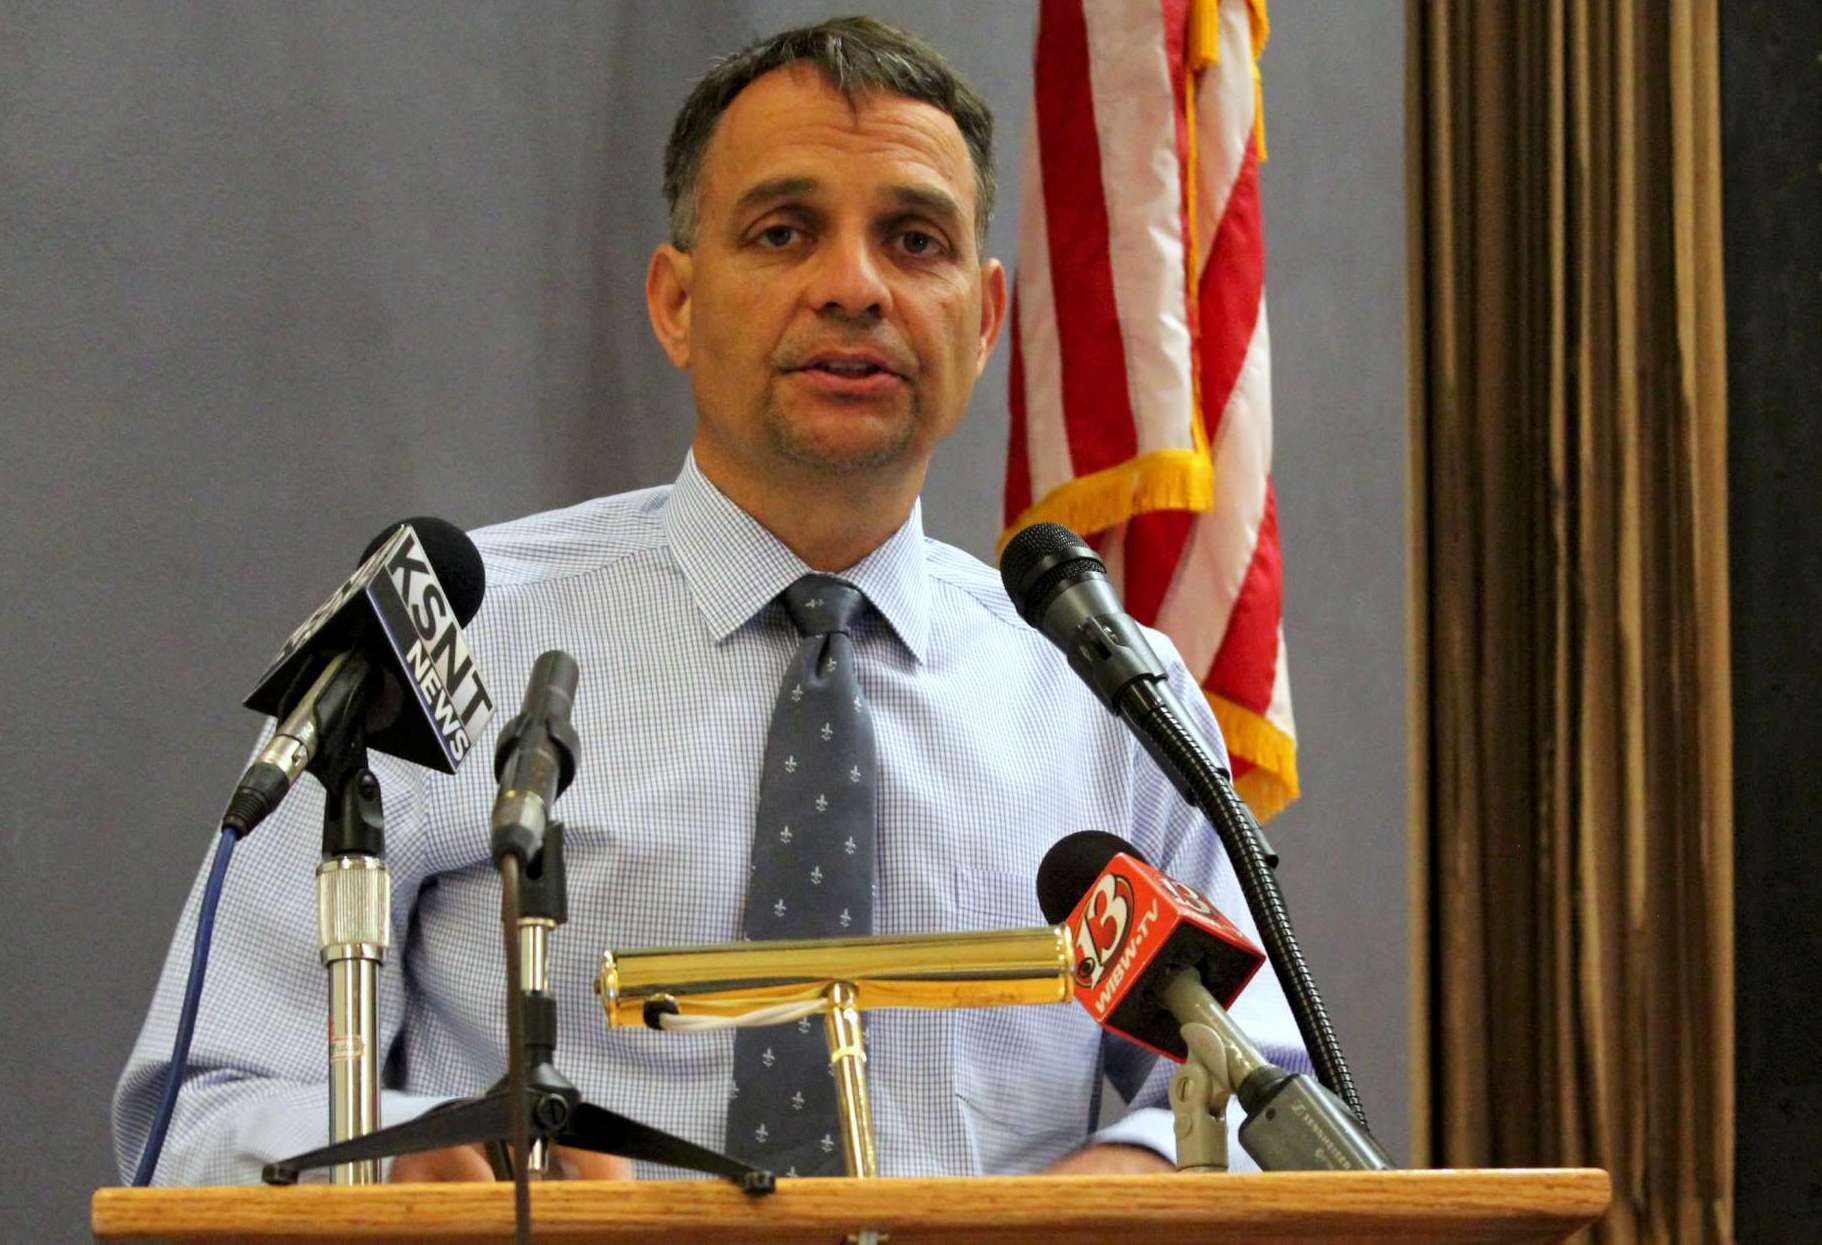 Shawnee County Election Commissioner Andrew Howell speaking at a hearing earlier this year. (Photo by Stephen Korada)